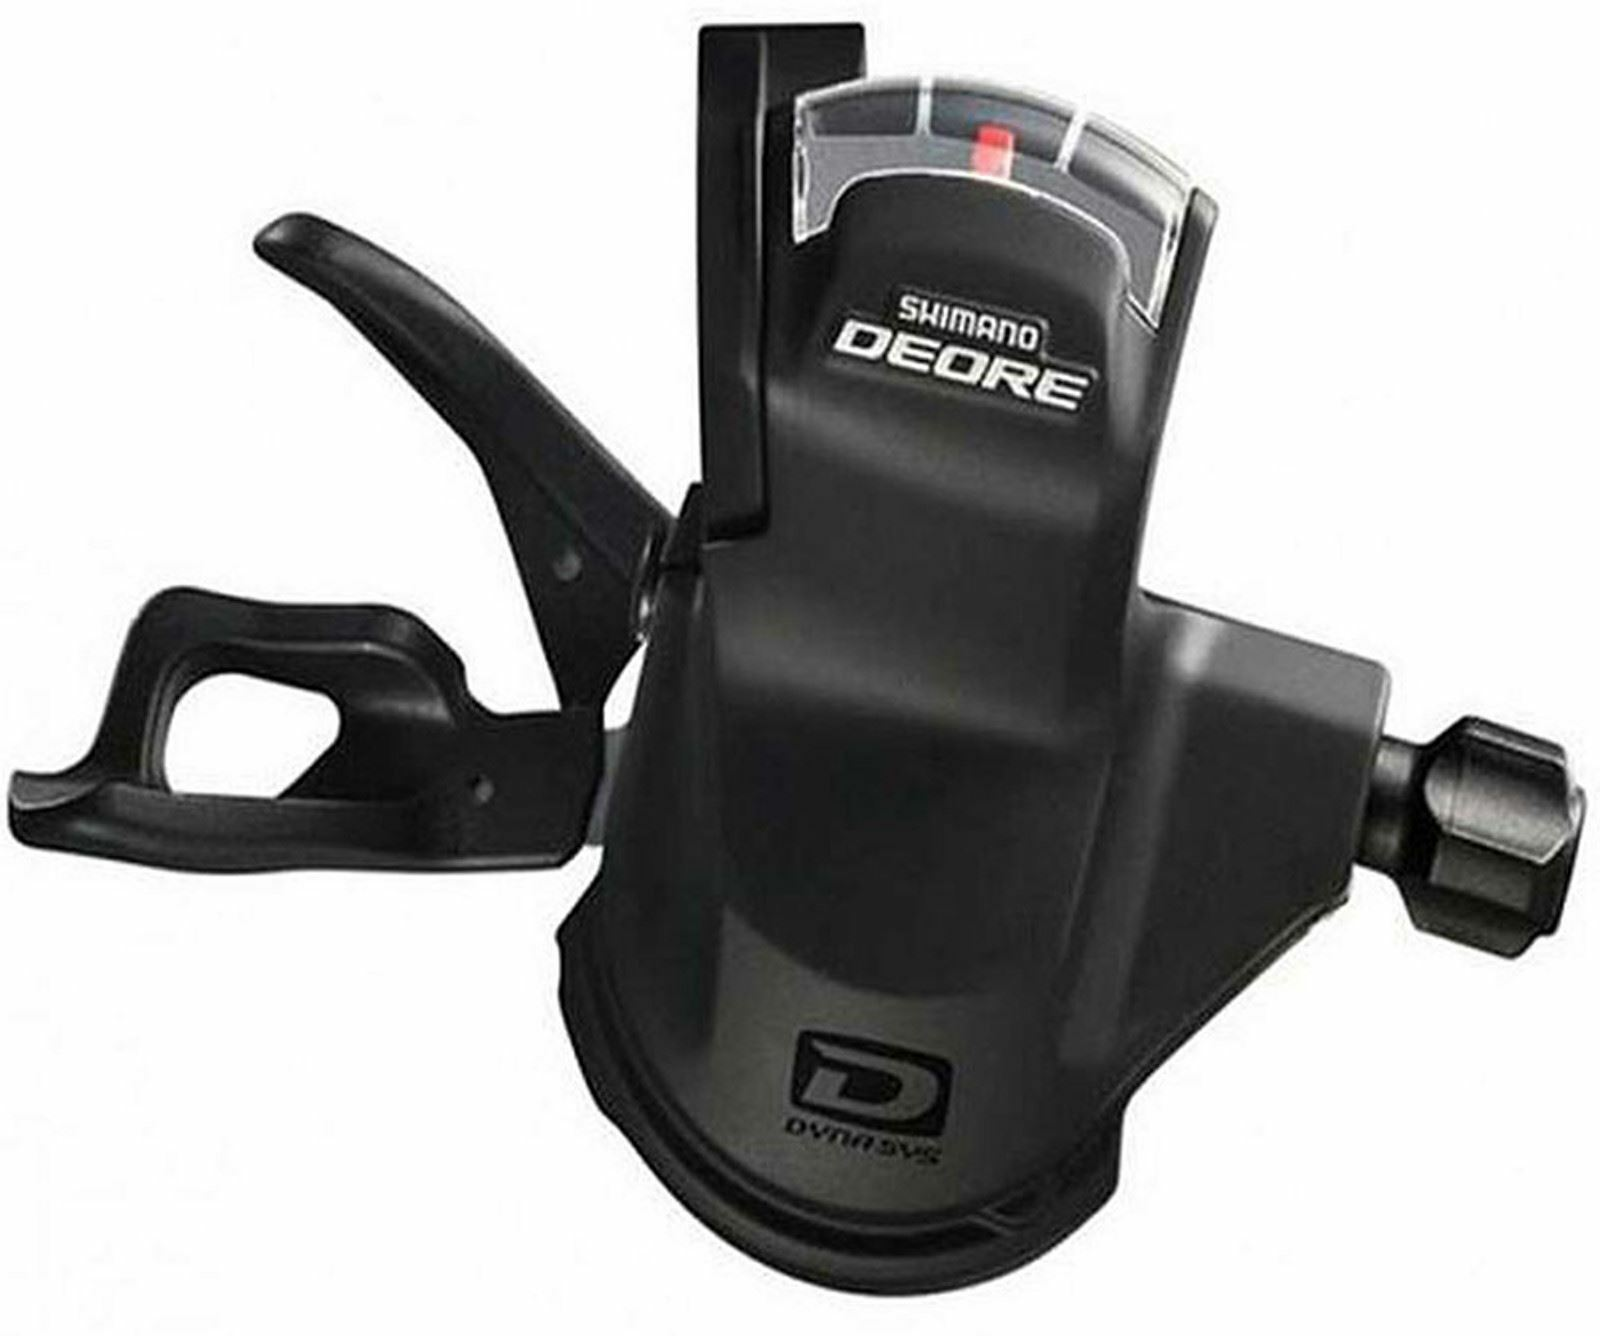 Shimano Deore SLM610 - 10 Speed Rapidfire Pods OEM for 10-speed Dyna-Sys systems